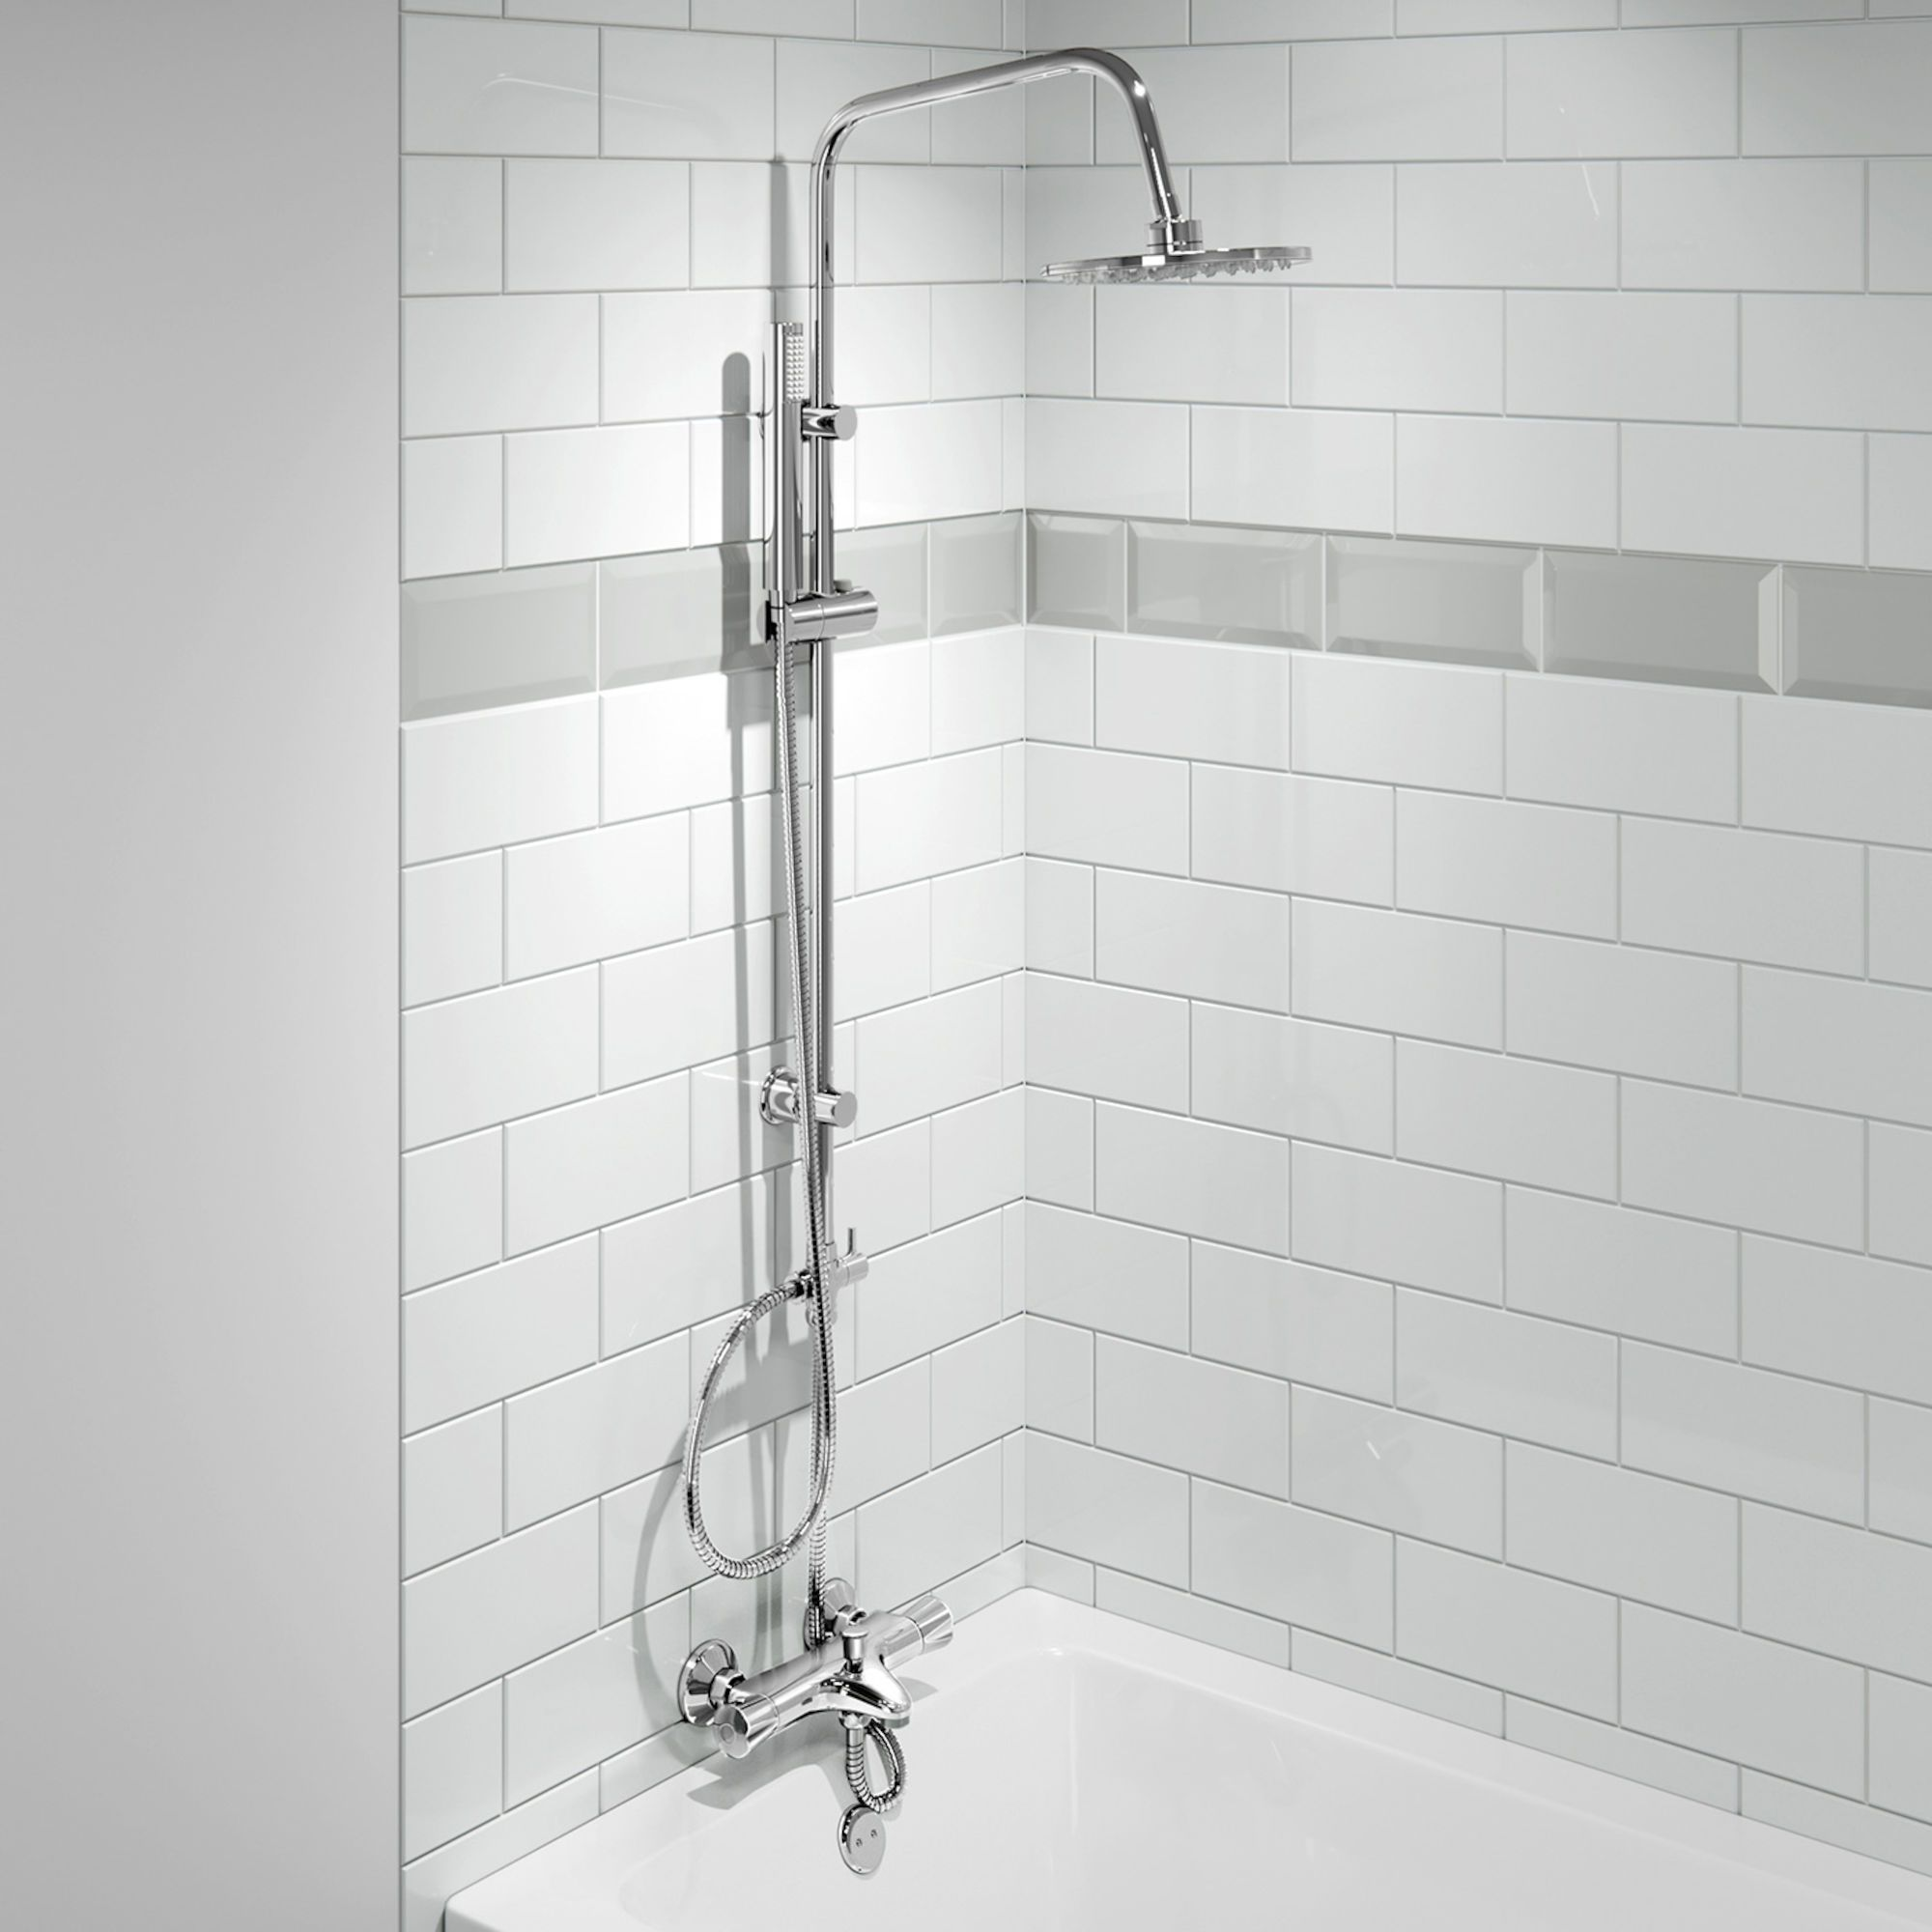 200Mm Round Shower Kit With Thermostatic Wall Mounted Bath Filler